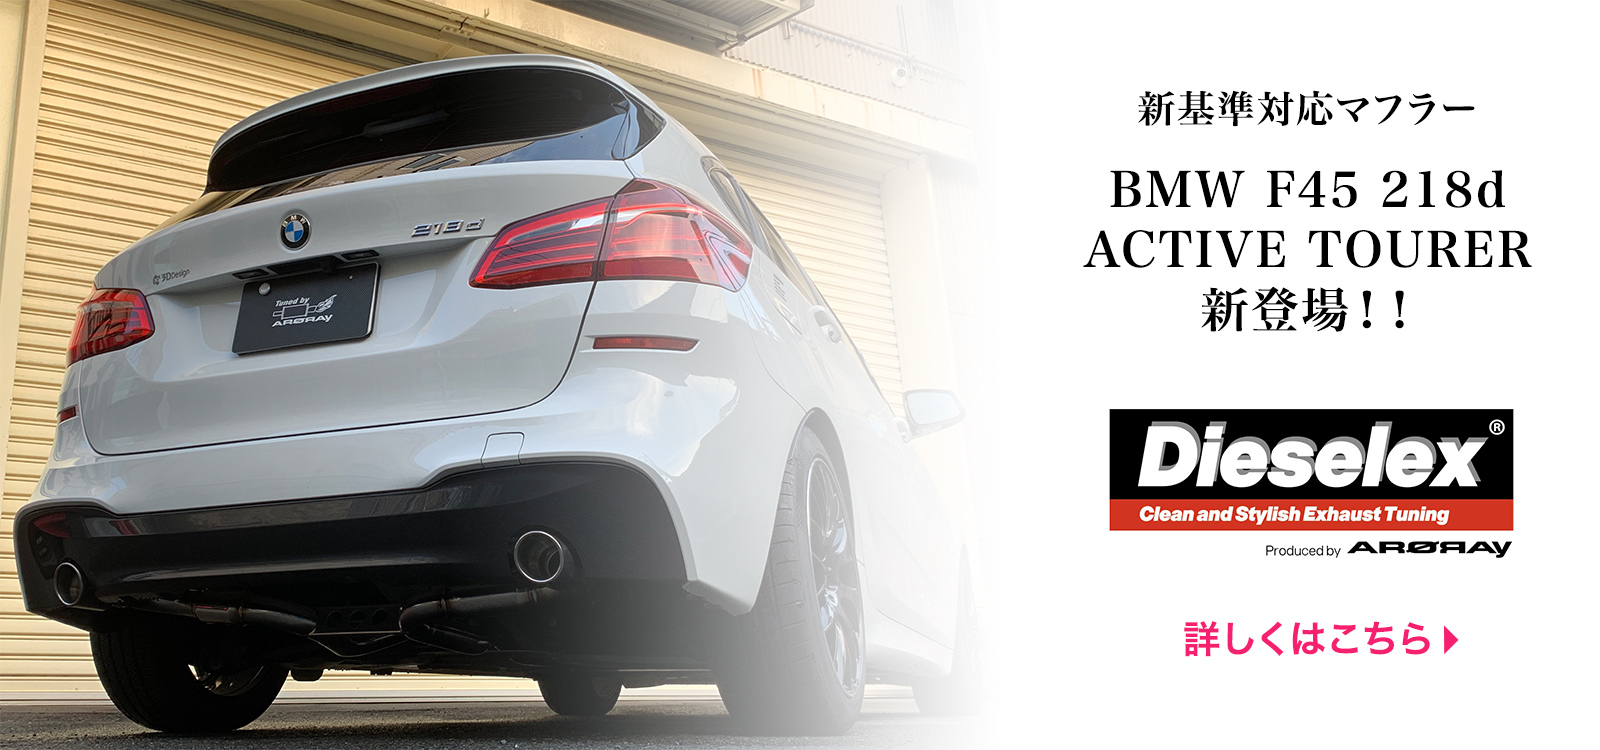 BMW F45 218d ACTIVE TOURER 新登場!!